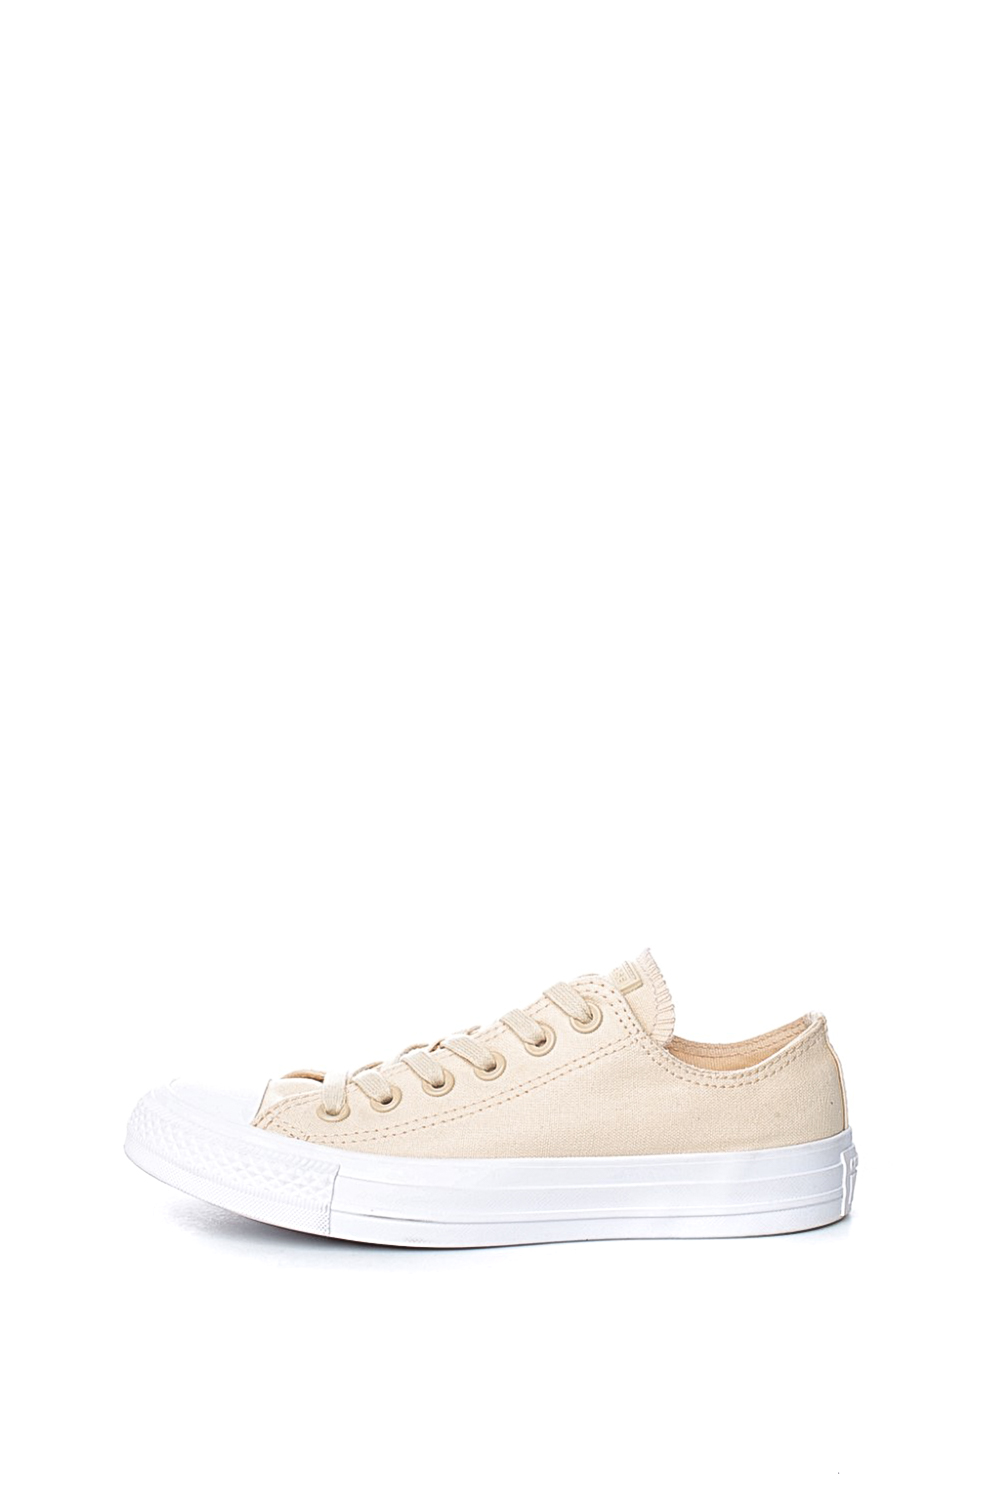 0ff268f9dab -20% Collective Online CONVERSE – Unisex sneakers CONVERSE Chuck Taylor All  Star Ox εκρού